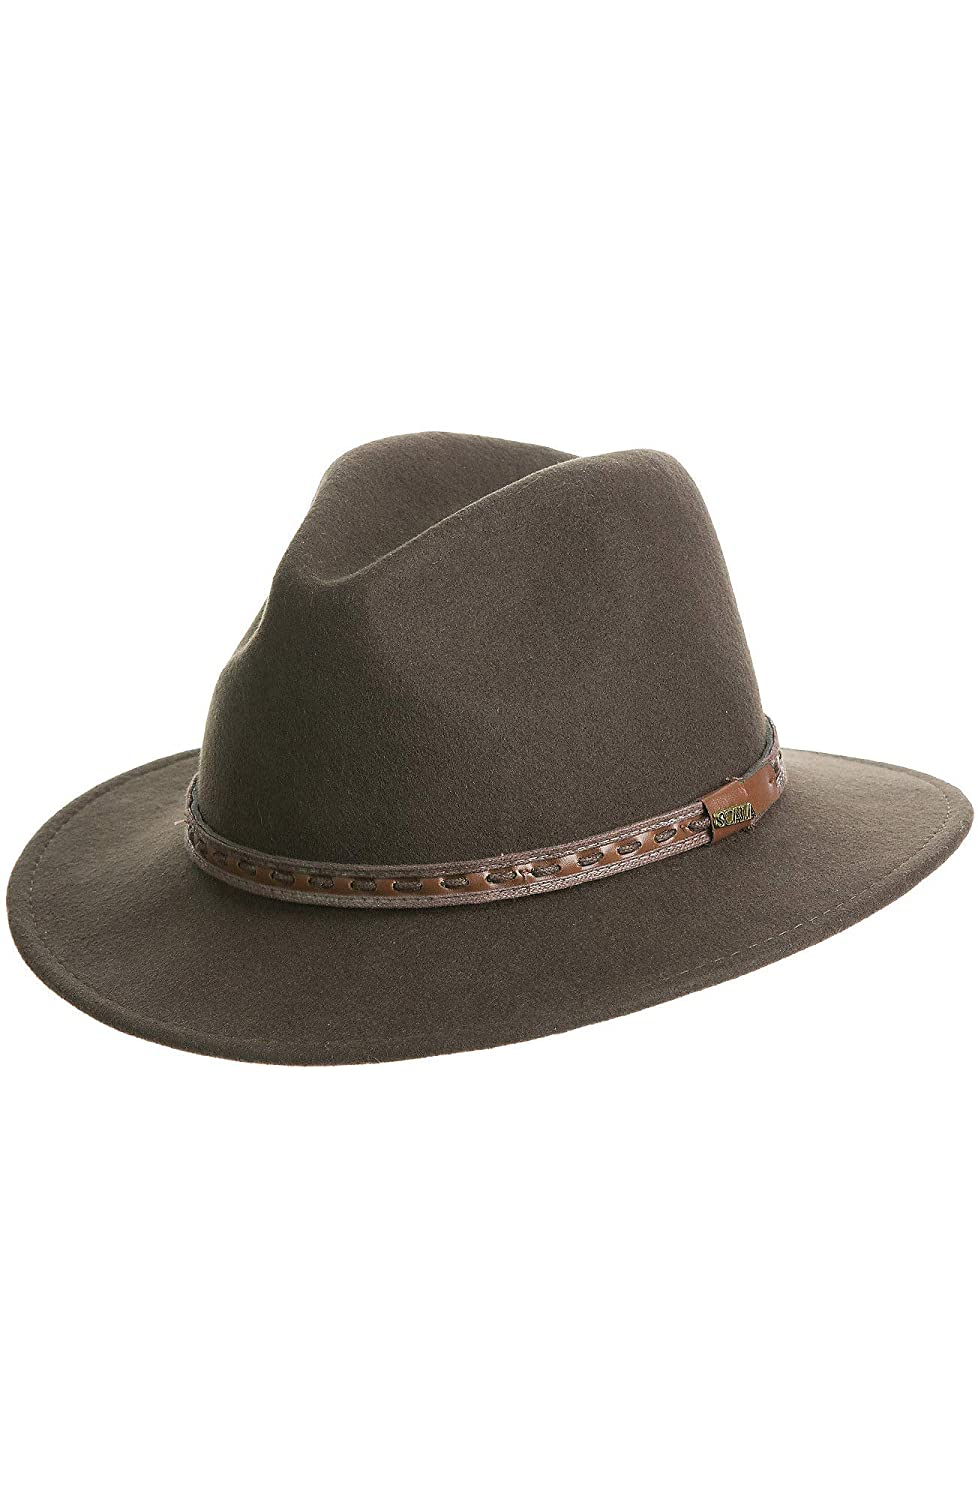 0bd5eb825d8e5d Overland Sierra Crushable Wool Safari Hat Overland Sheepskin Co. 78108